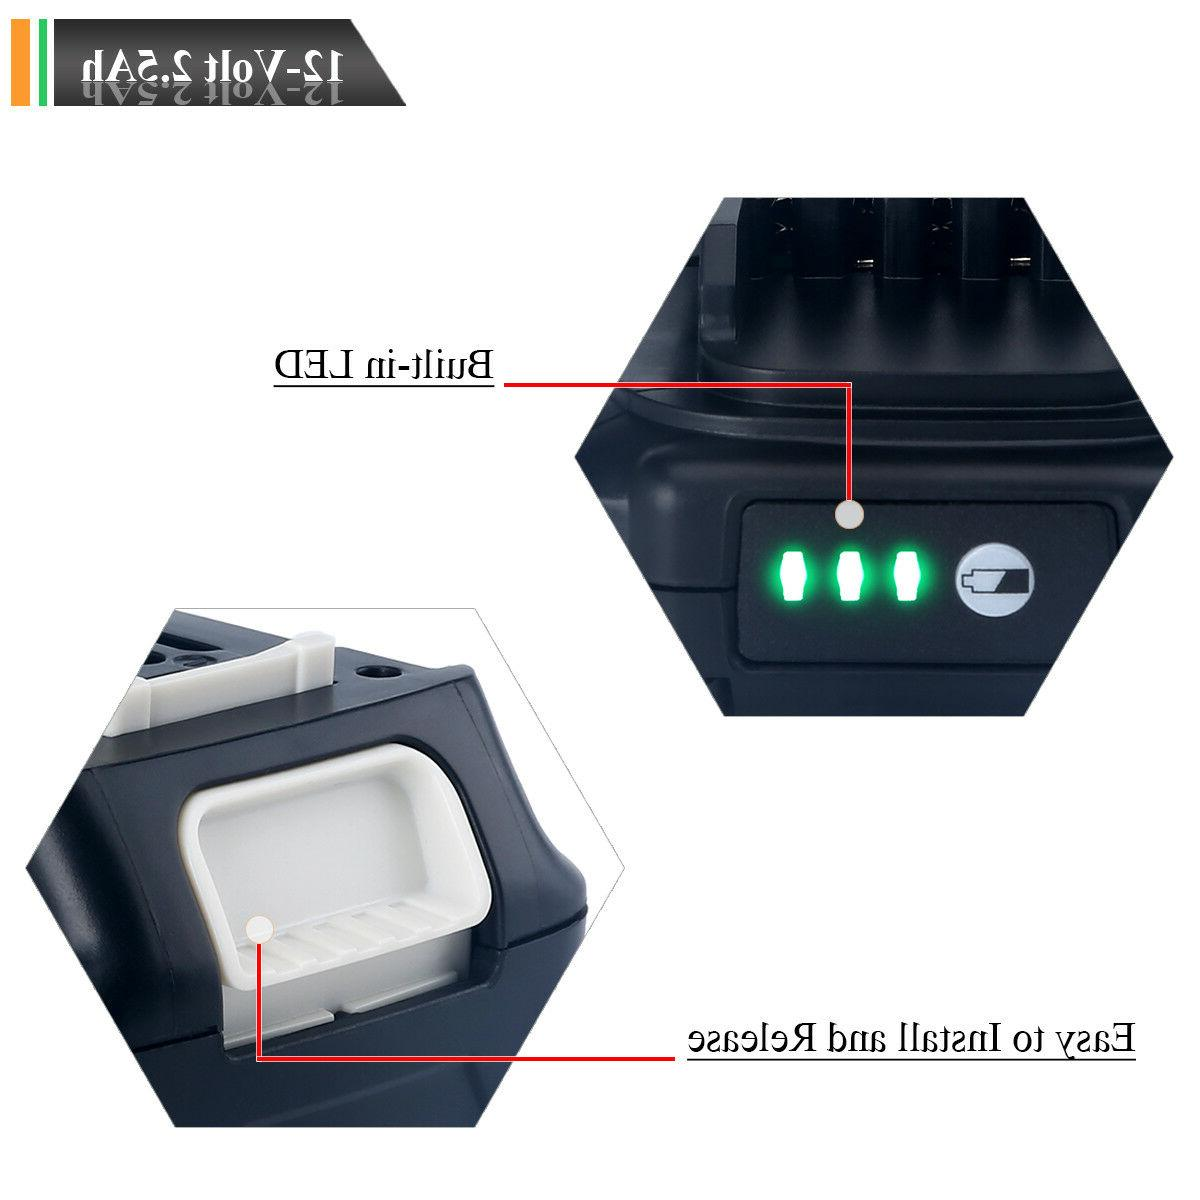 New Max CXT 2.5Ah Battery Replacement Tool